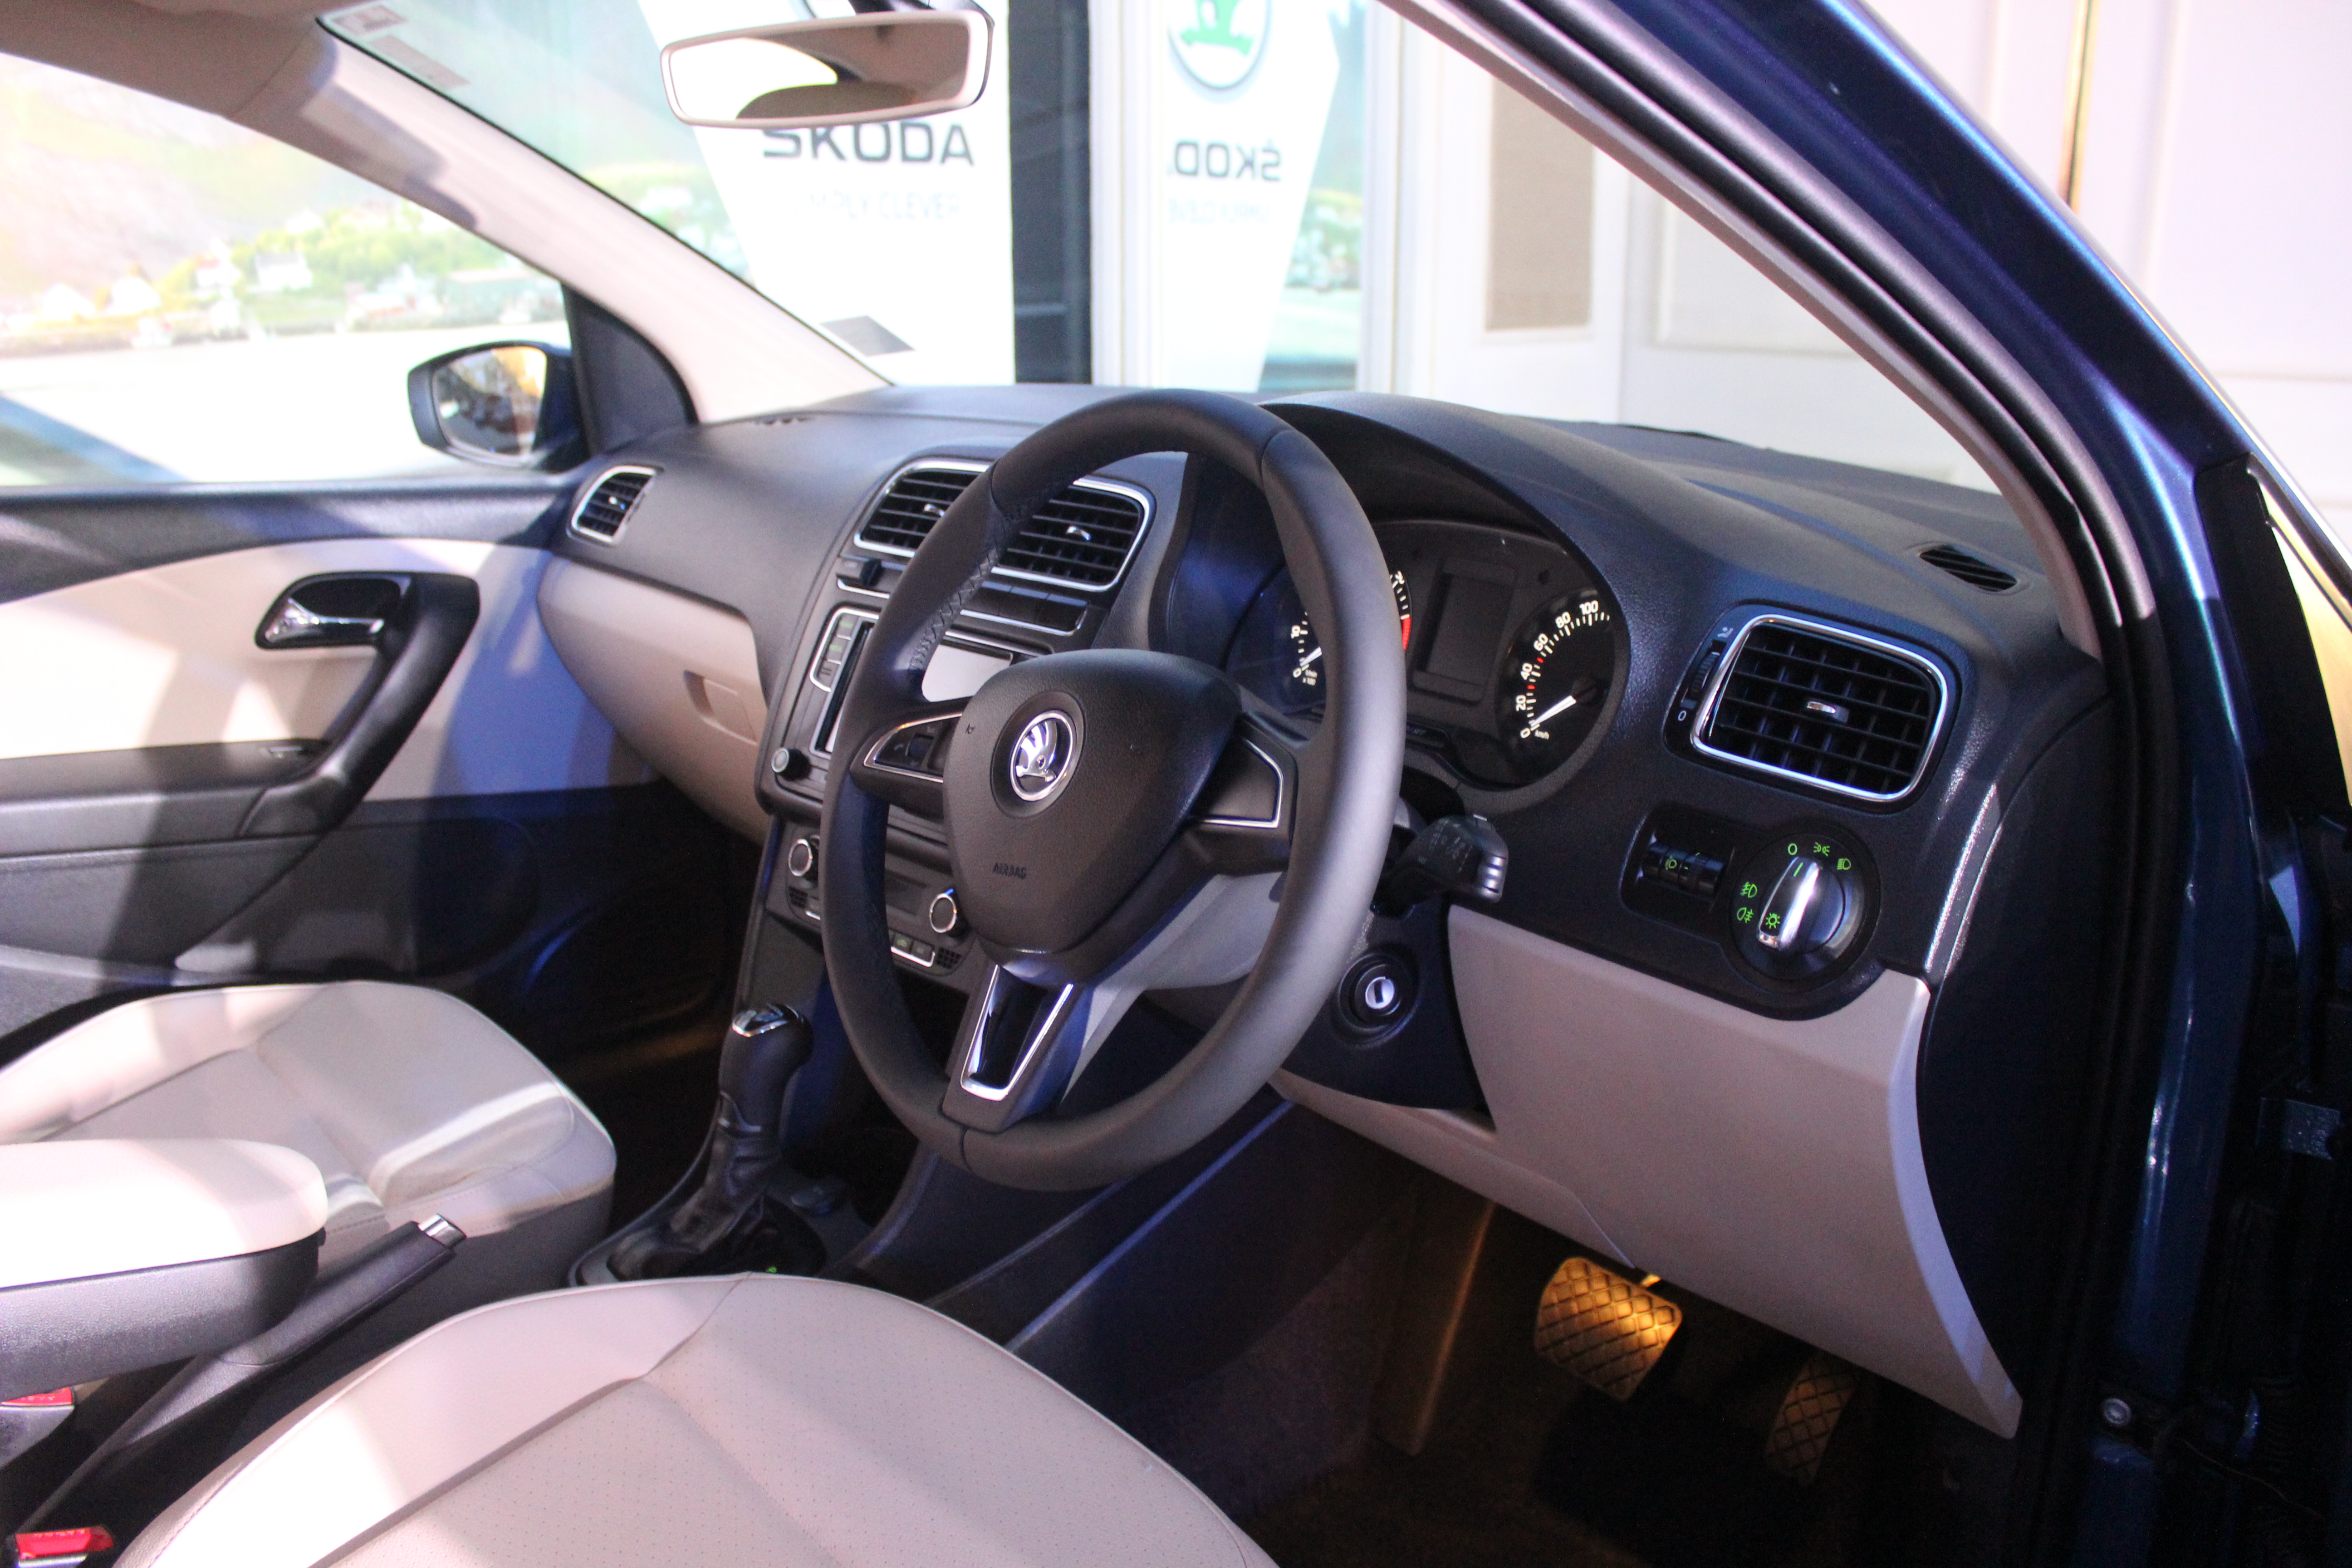 Skoda Rapid Facelift Interiors 14